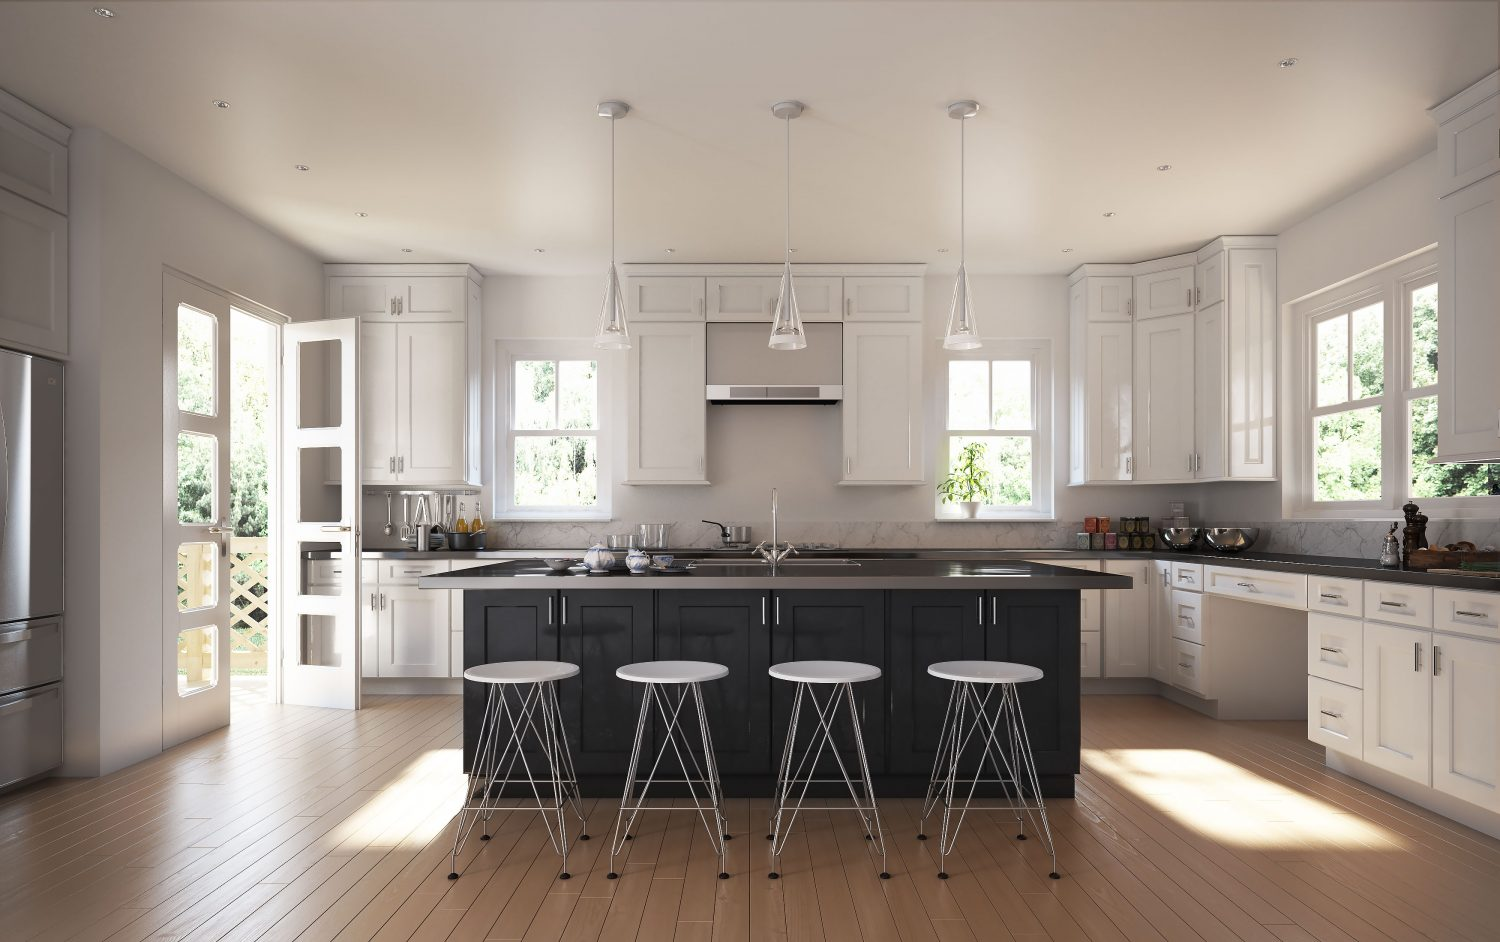 Kitchen cabinets visualization addo visualization 3d for Kitchen visualizer free